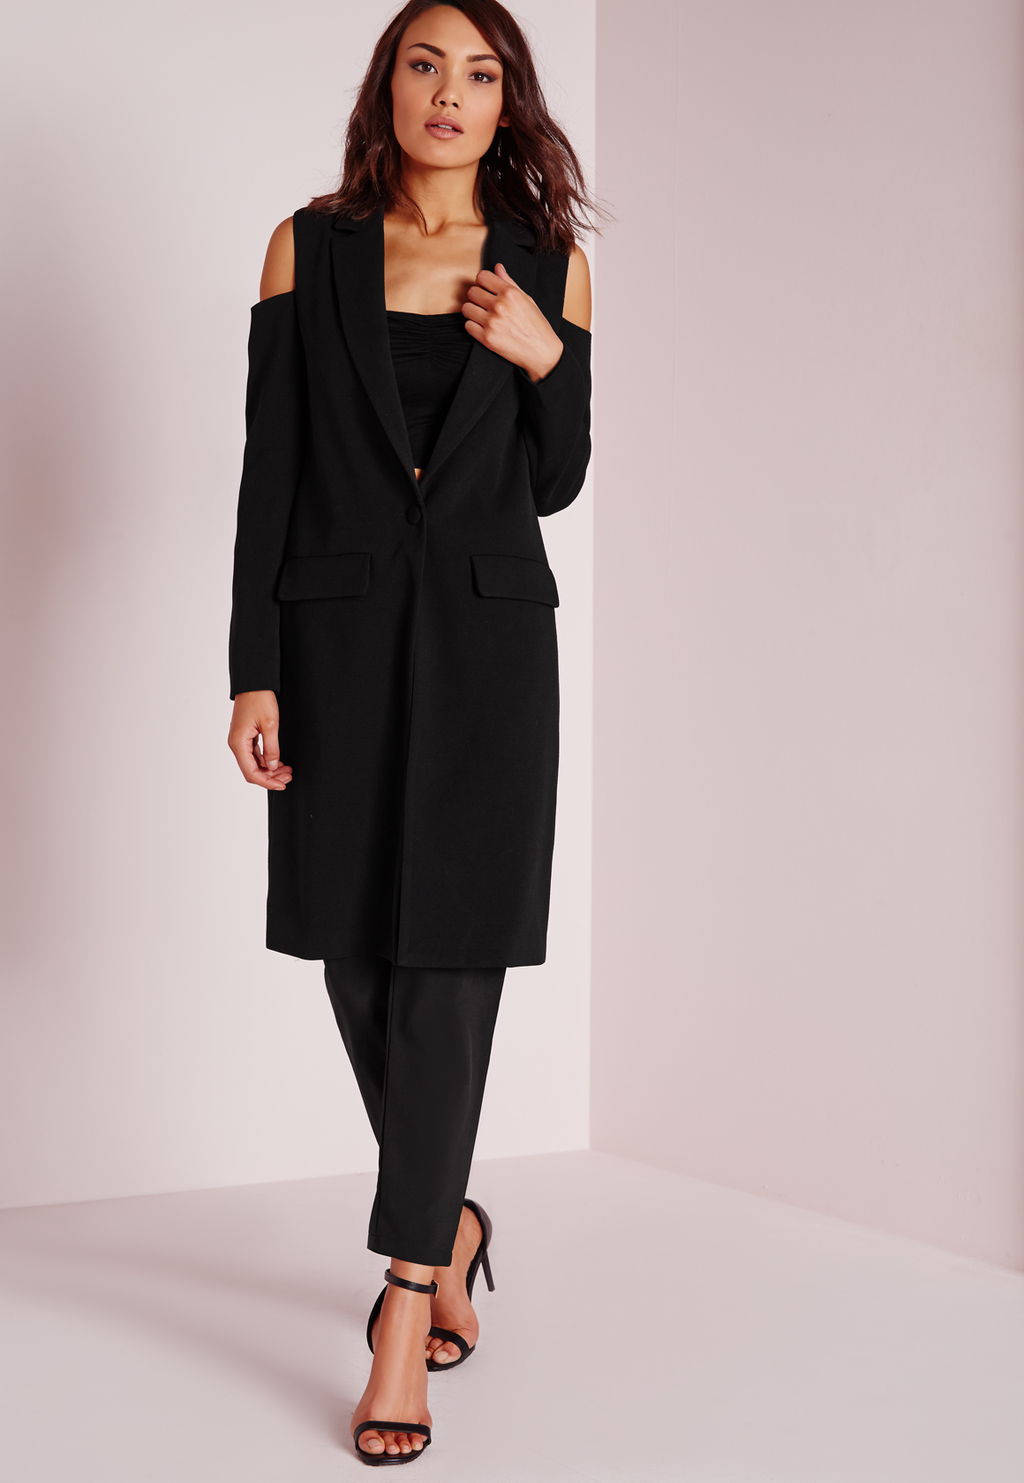 Cold Shoulder Longline Blazer Black, Black - pattern: plain; sleeve style: sleeveless; style: gilet; collar: standard lapel/rever collar; length: on the knee; predominant colour: black; occasions: evening, creative work; fit: tailored/fitted; fibres: polyester/polyamide - 100%; sleeve length: sleeveless; texture group: crepes; collar break: low/open; pattern type: fabric; hip detail: front pockets at hip; season: s/s 2016; wardrobe: highlight